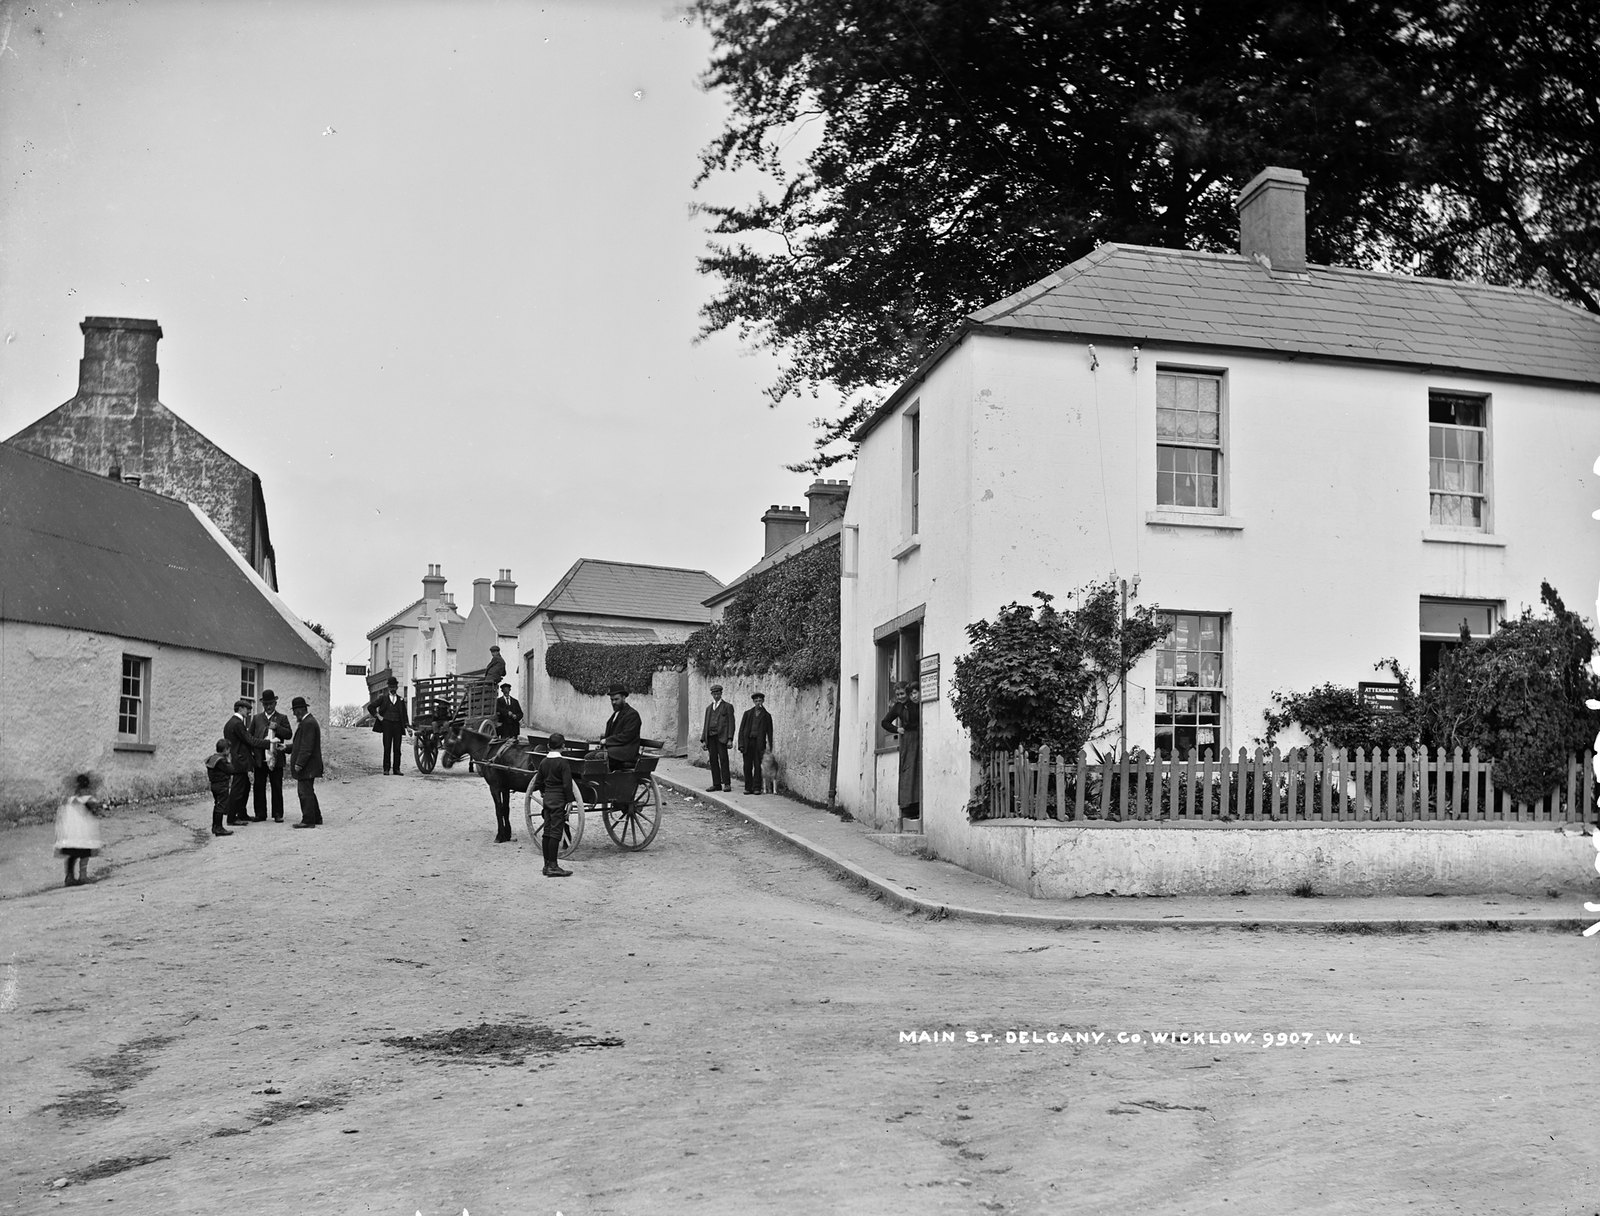 Traffic Jam in Main Street, Delgany, Co. Wicklow | by National Library of Ireland on The Commons